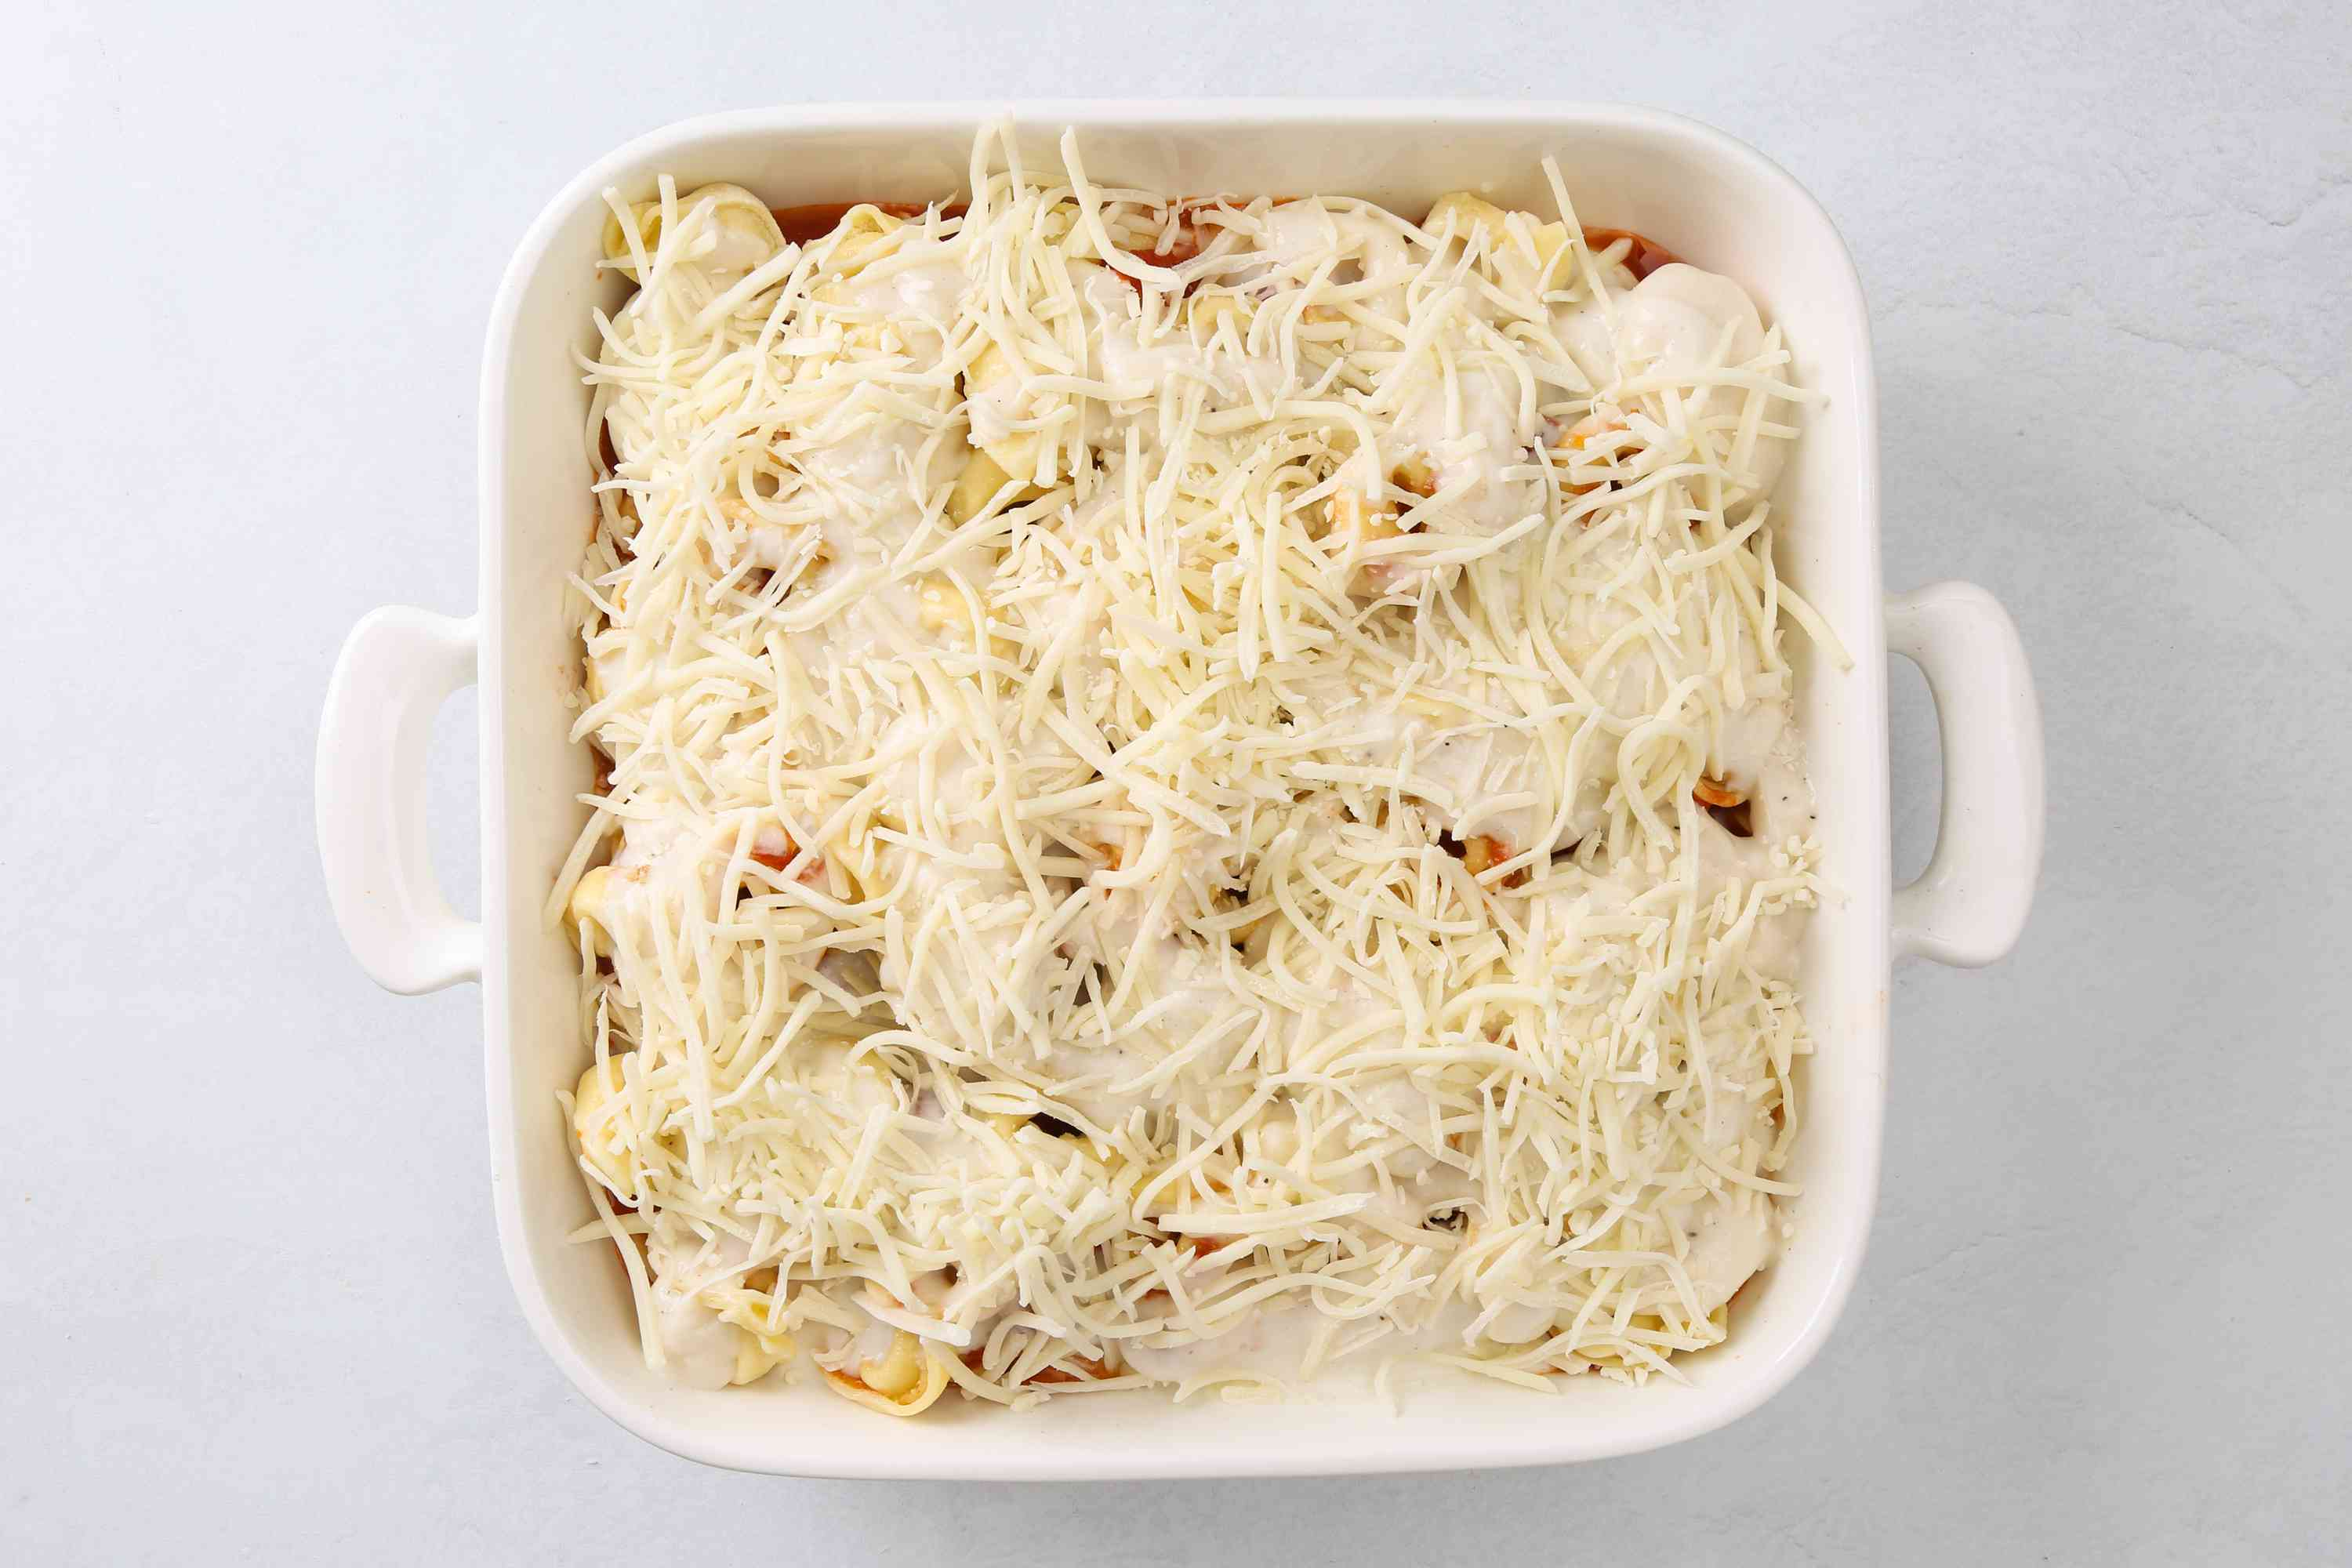 cheese on top of the Alfredo sauce in the baking dish